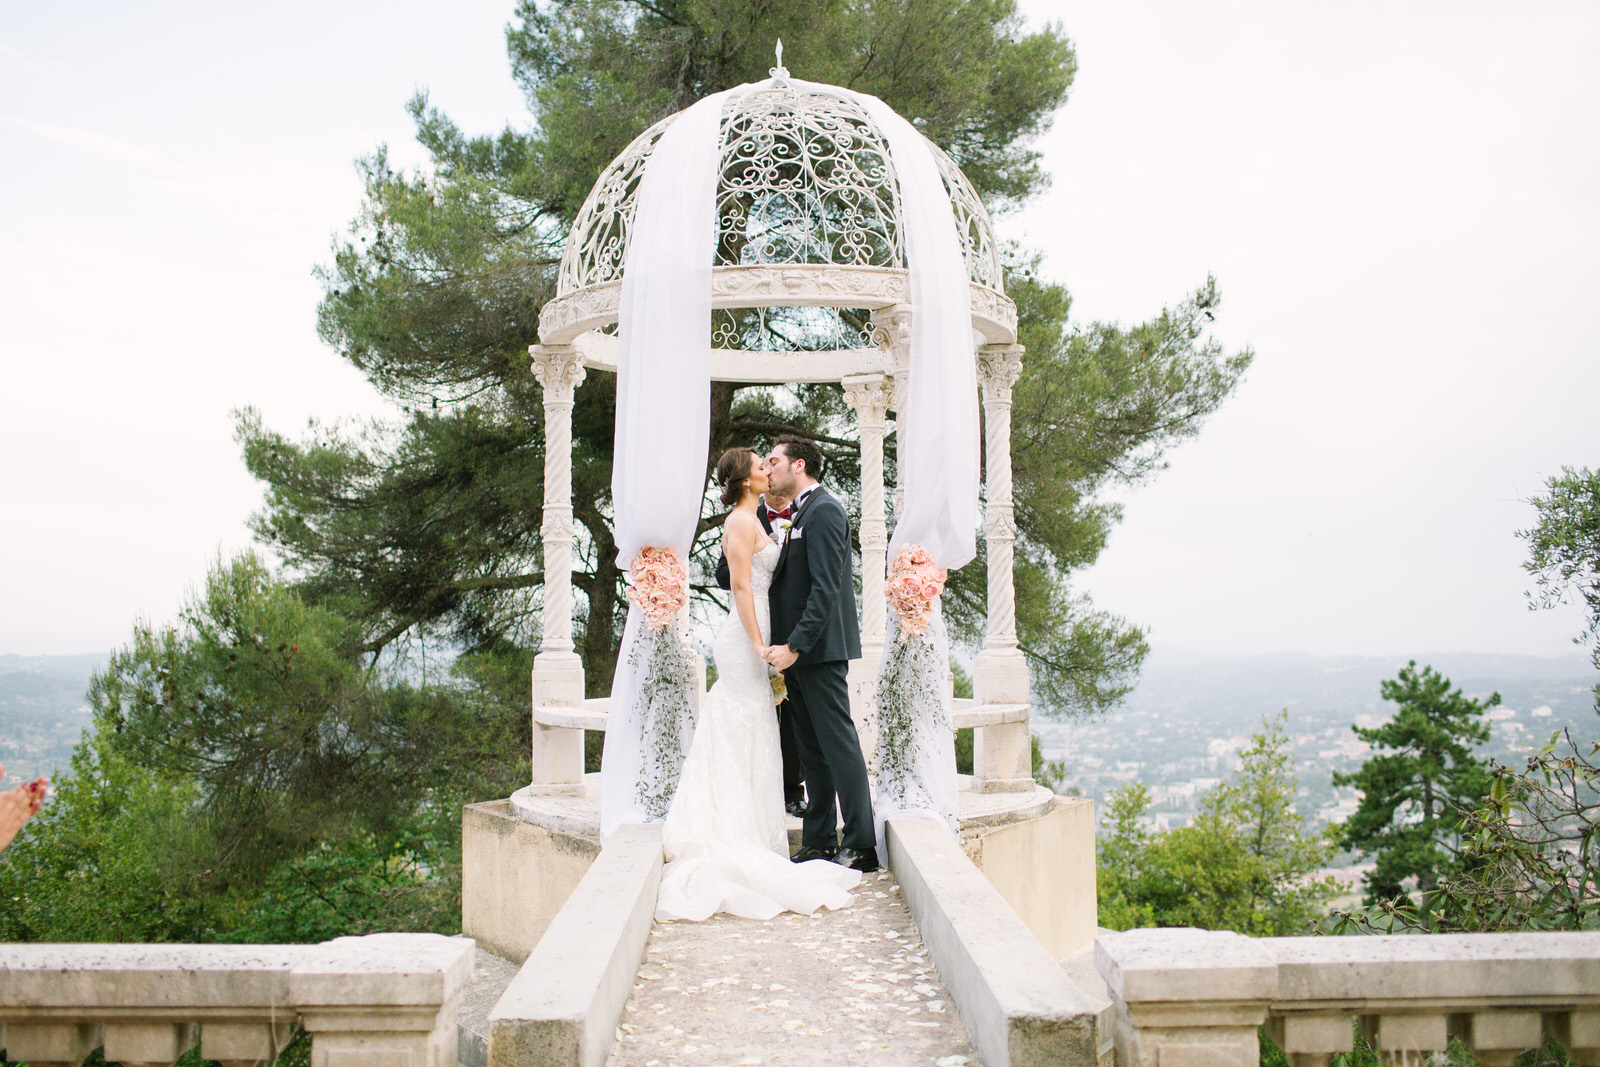 Wedding_France_Grasse_Chateau_Saint_Georges_Fidan_Kandemir